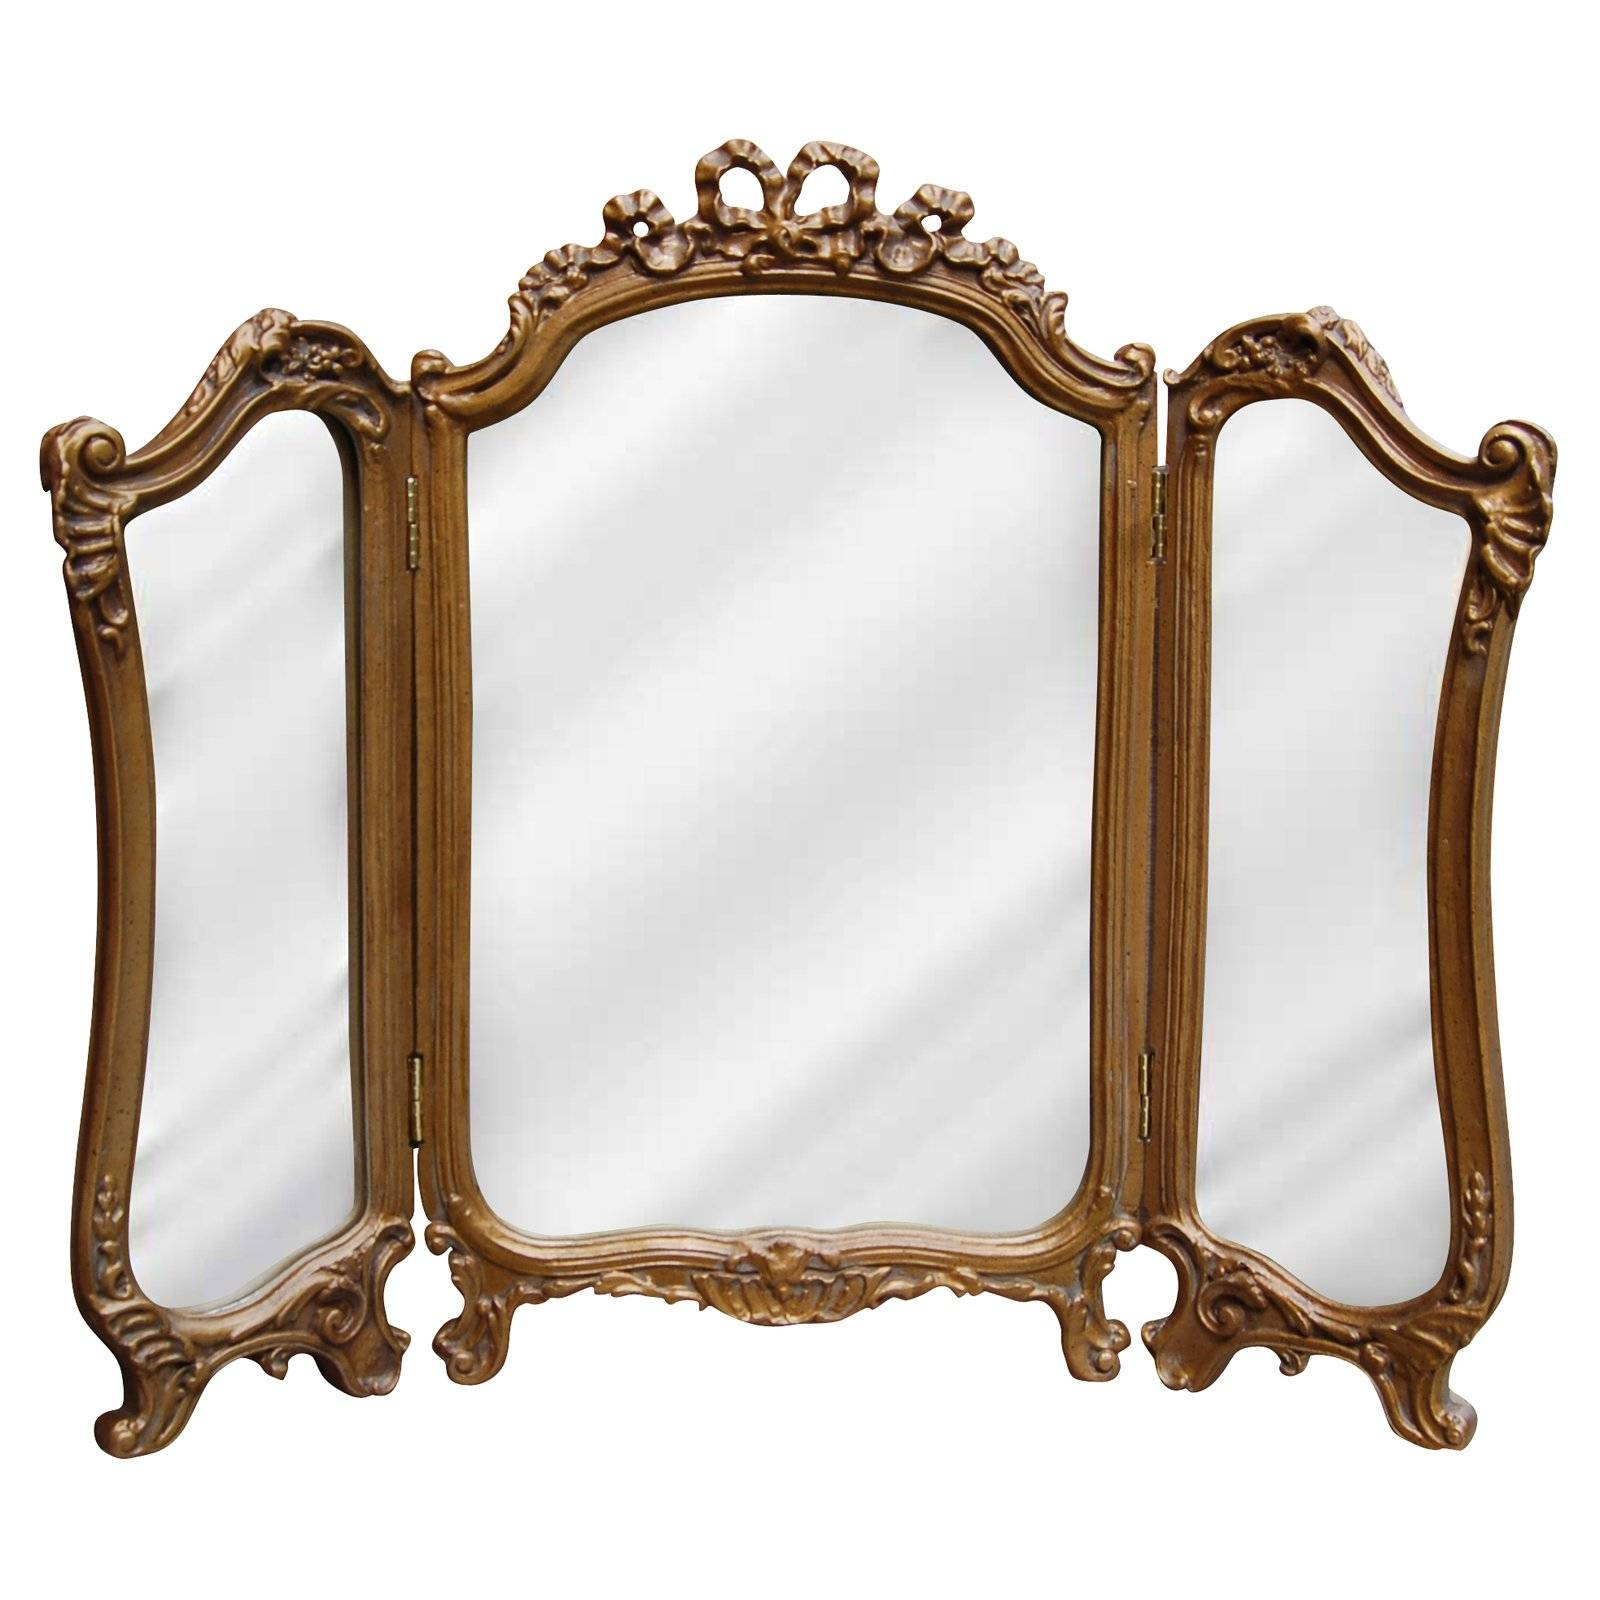 Mirrors - Walmart intended for Antique Arched Mirrors (Image 21 of 25)